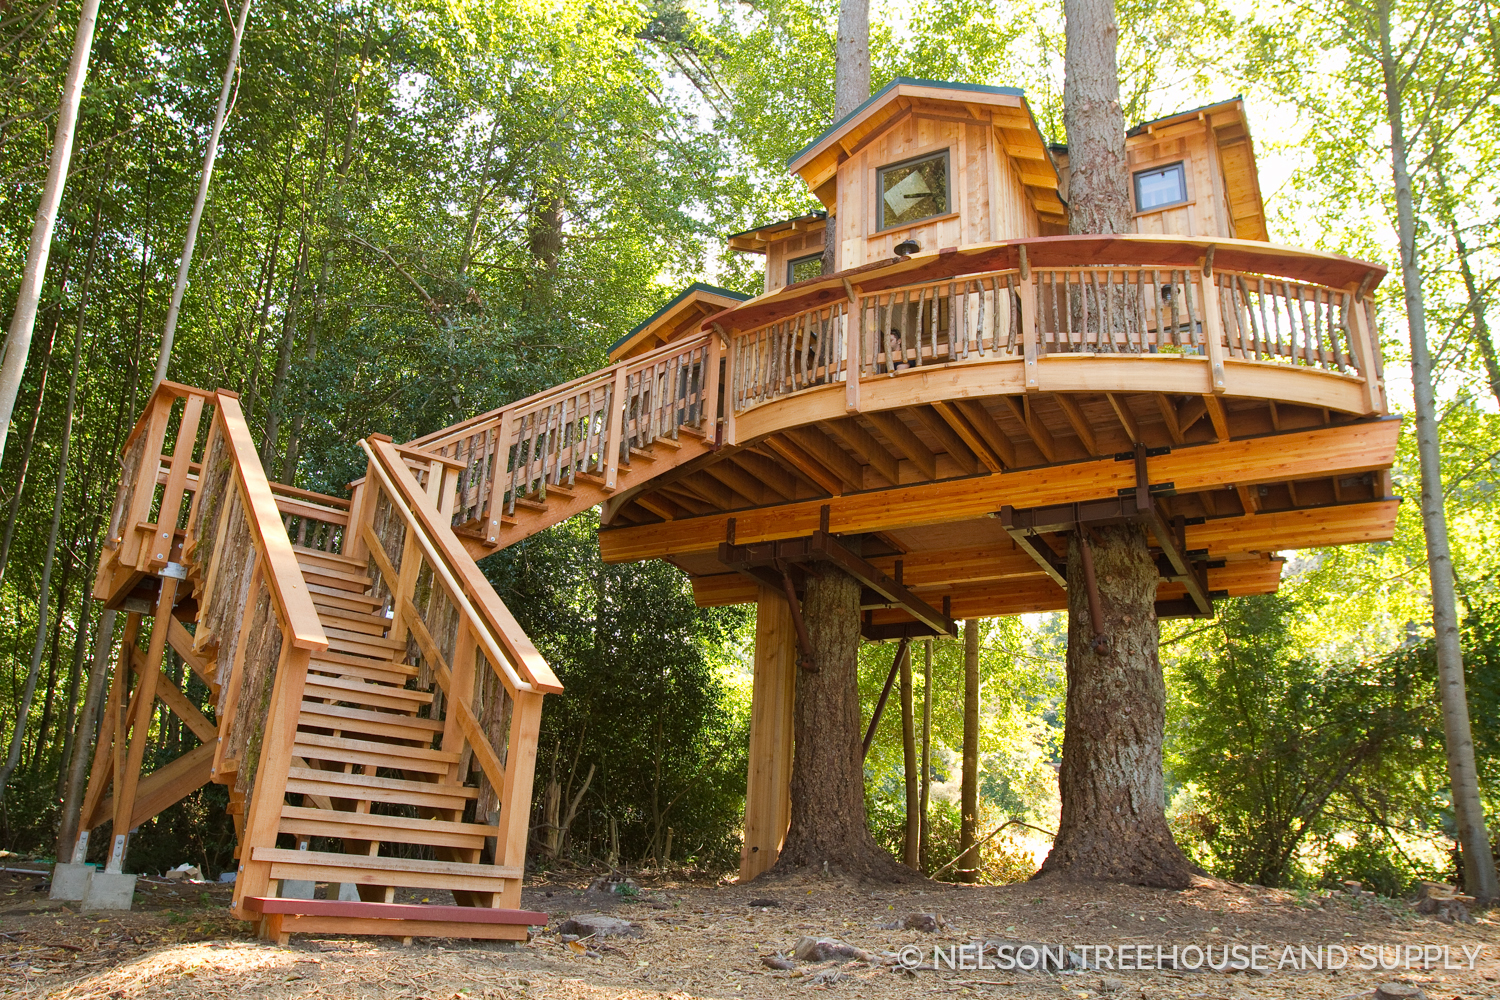 The  Orcas Island treehouse  was one of Daryl's recent projects.